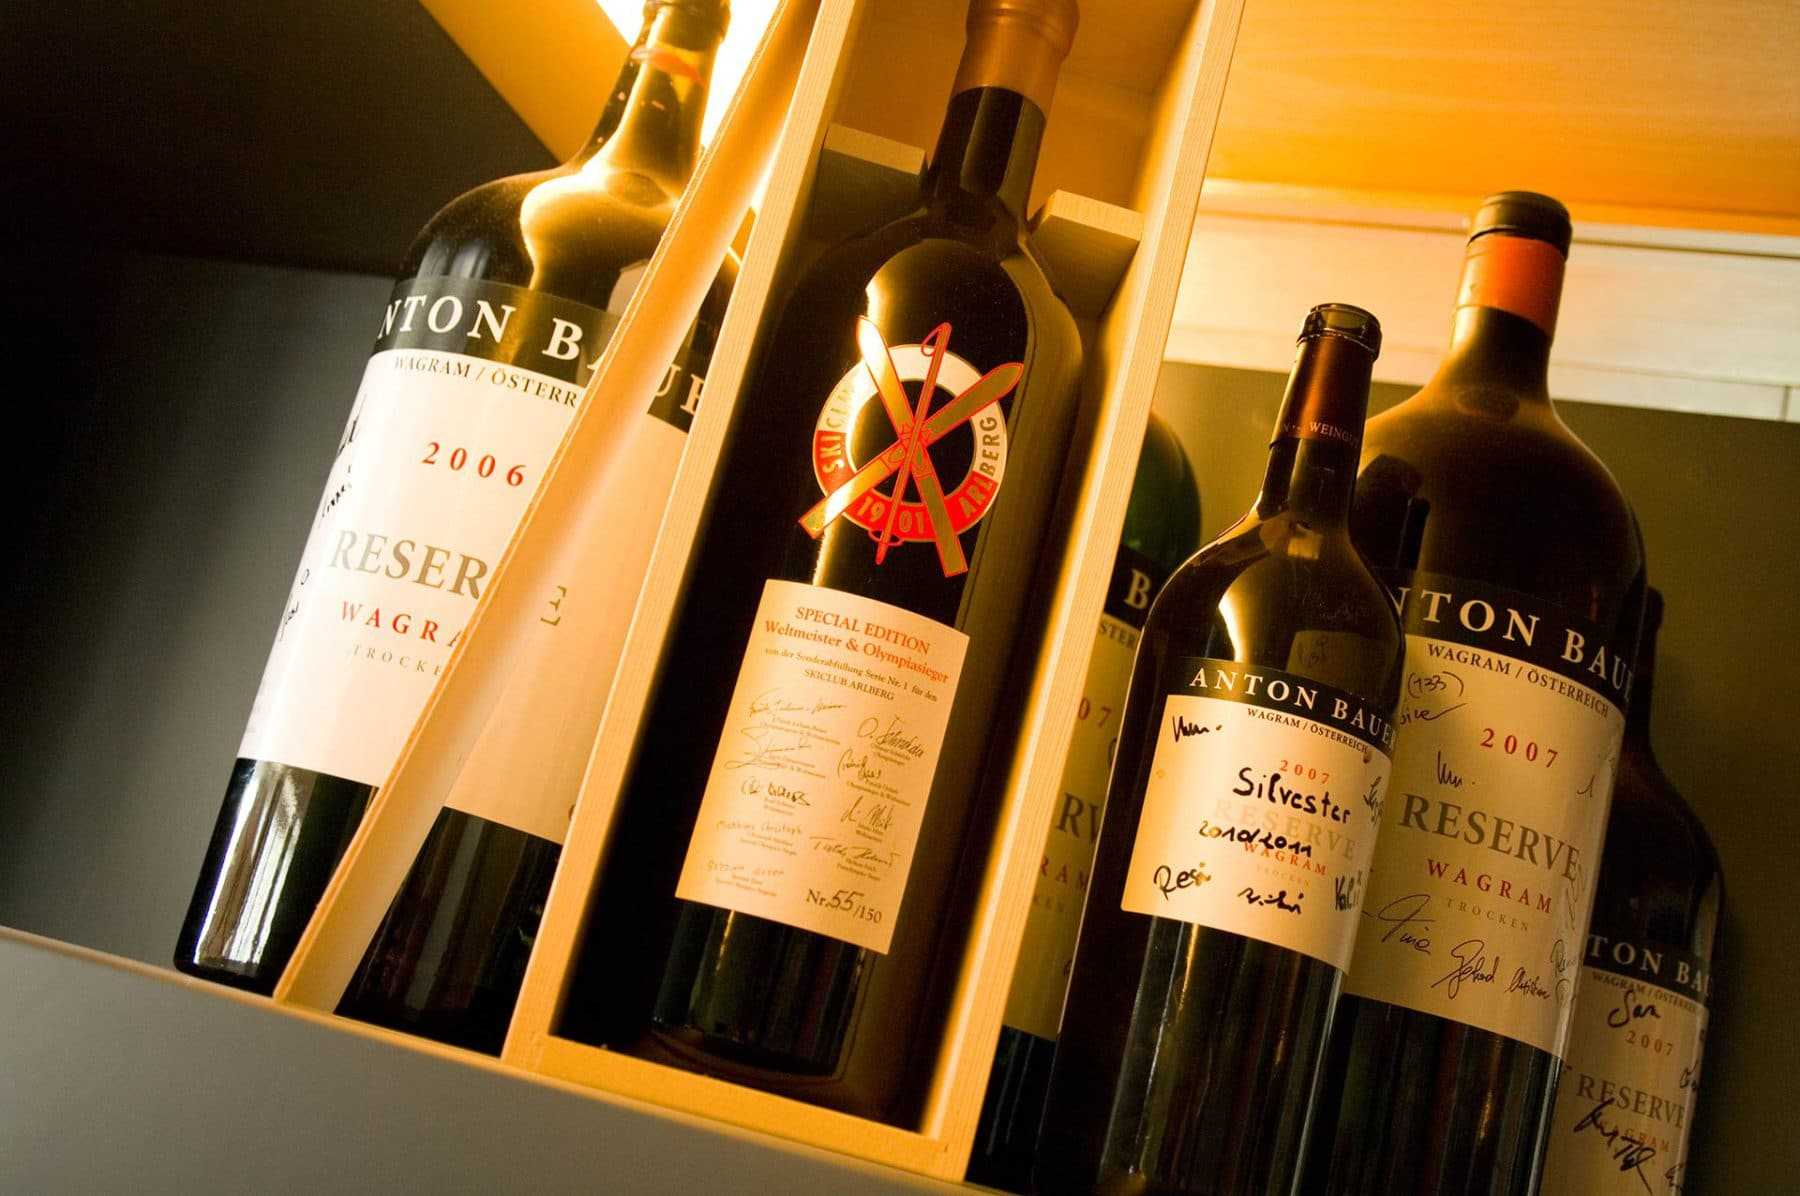 A few selections of the Restaurant's fine wines, all well lit with one bottle inside of a wooden box.